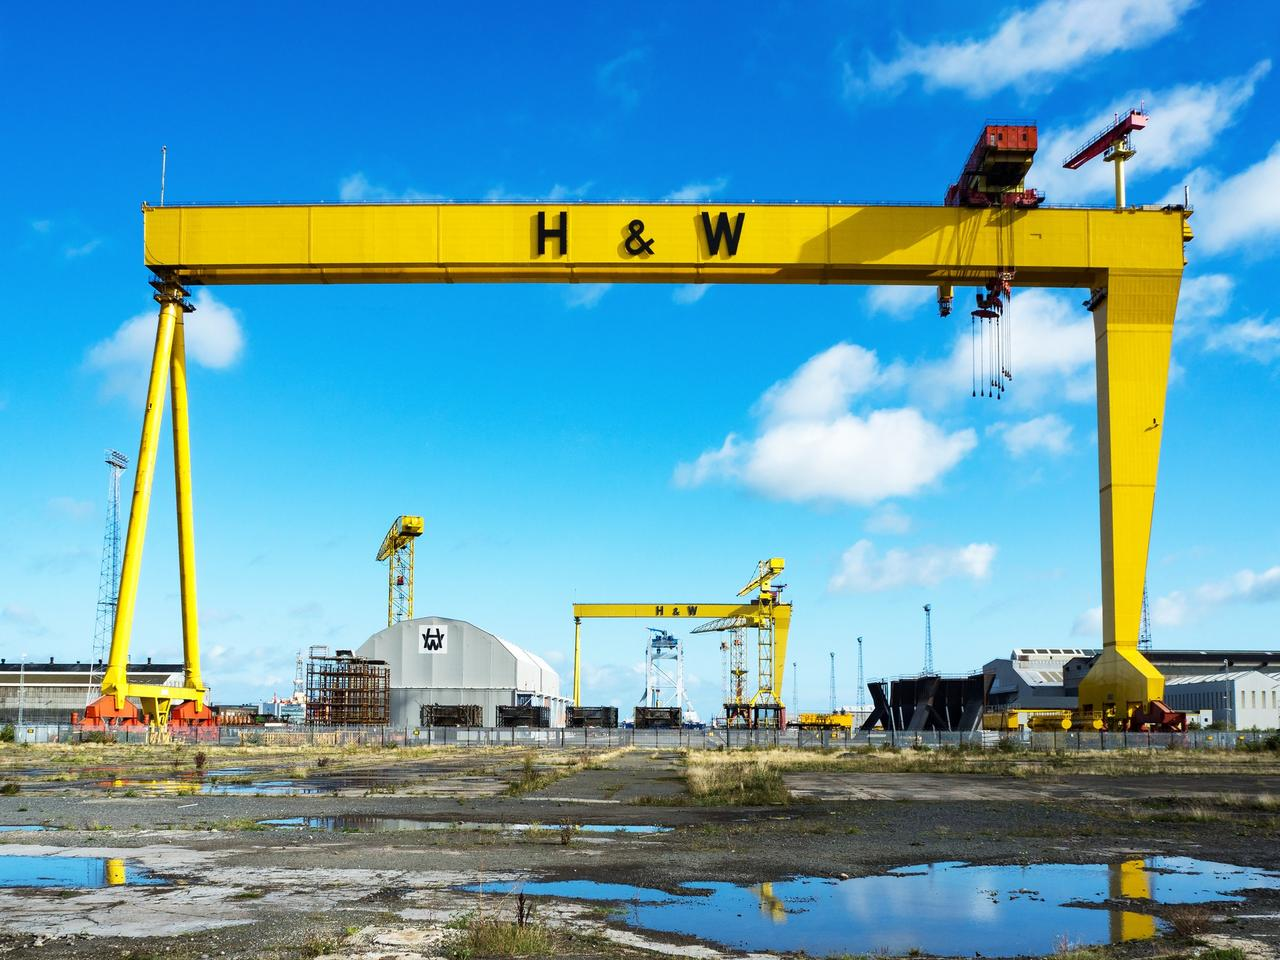 Samson and Goliath. Famous shipyard cranes in Belfast